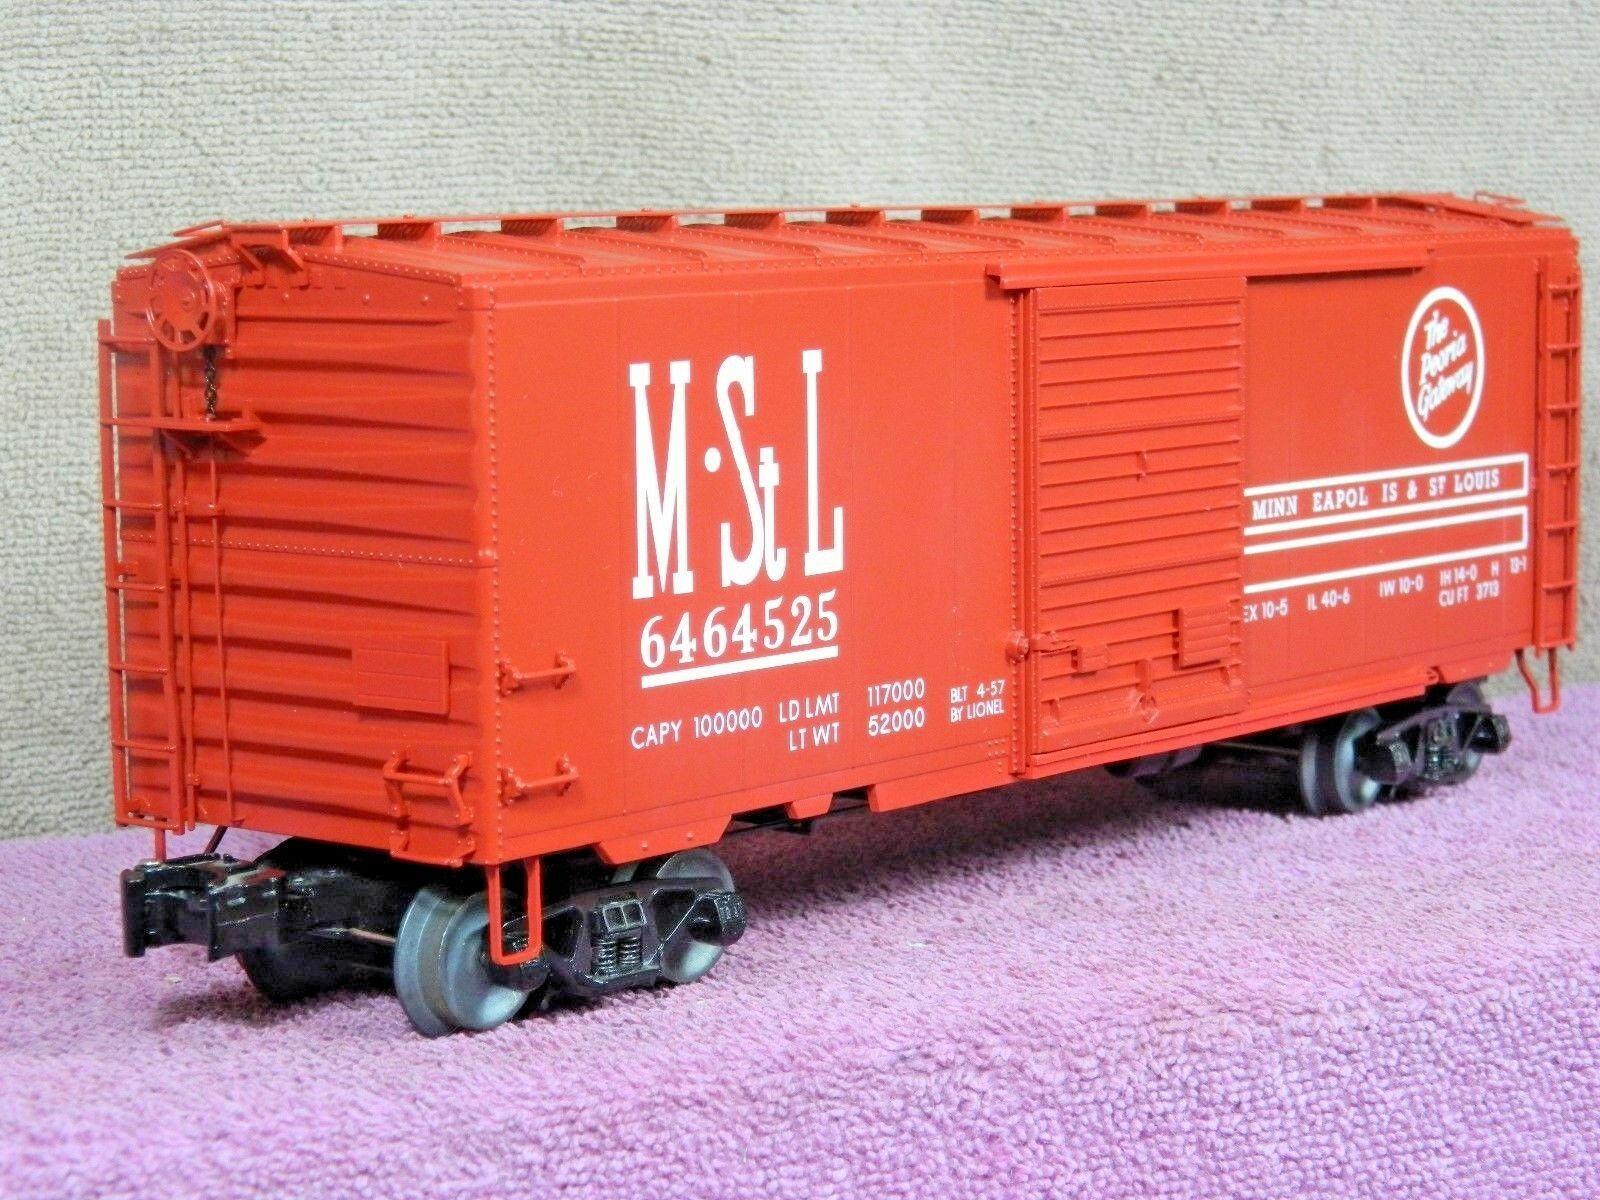 LIONEL O SCALE  6-27292 MINNEAPOLIS & St LOUIS PEORIA WAY  40ft PS-1 BOX CAR NIB